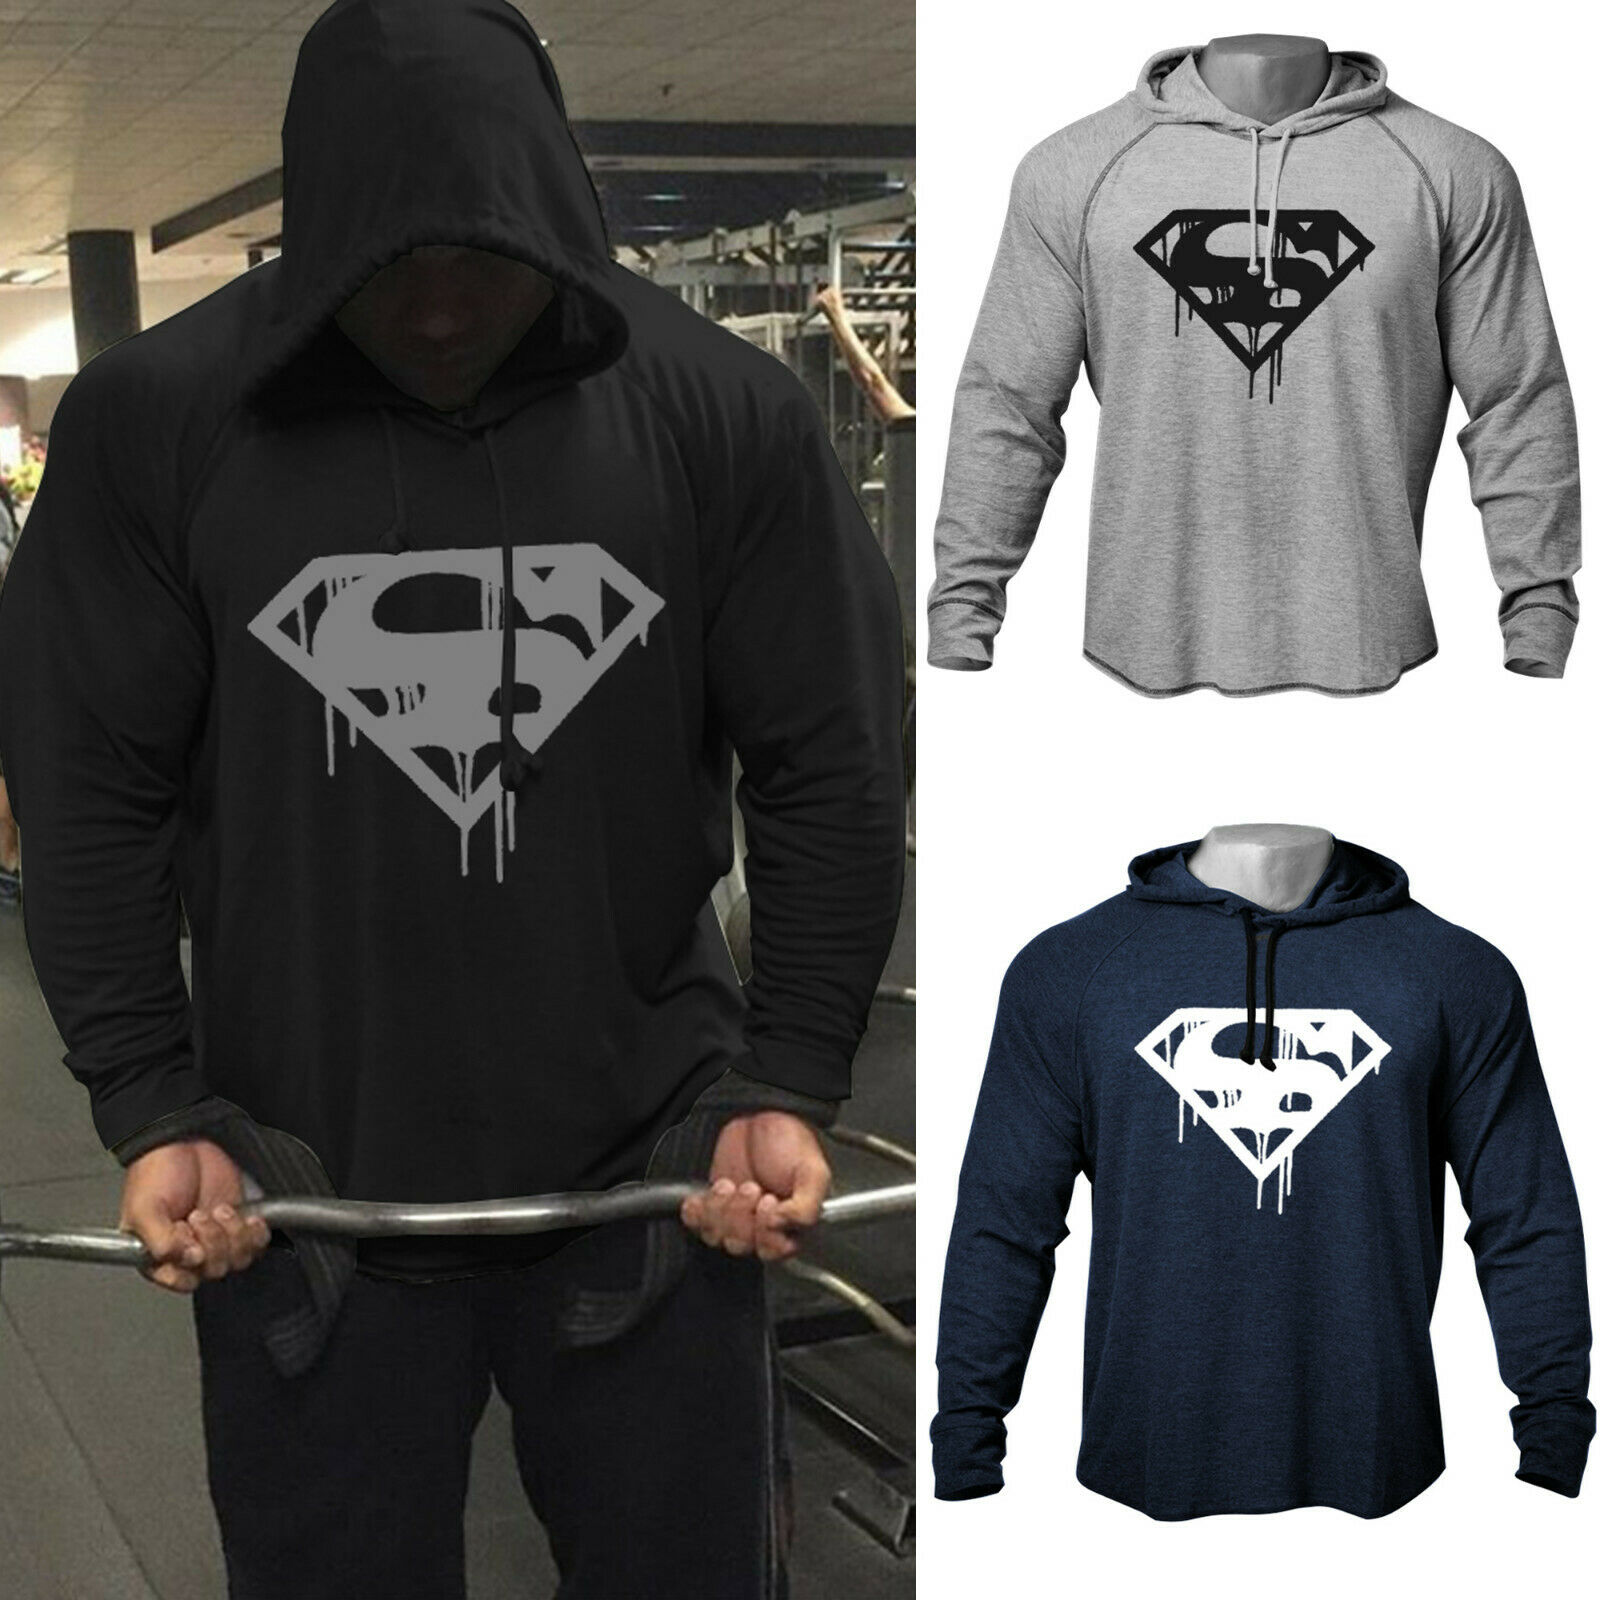 OA Men's Fitness Workout Bodybuilding Blood Superman Print Raglan Hooded Sweatshirts High Quality Hem-Cut Hoodies Tracksuit Top